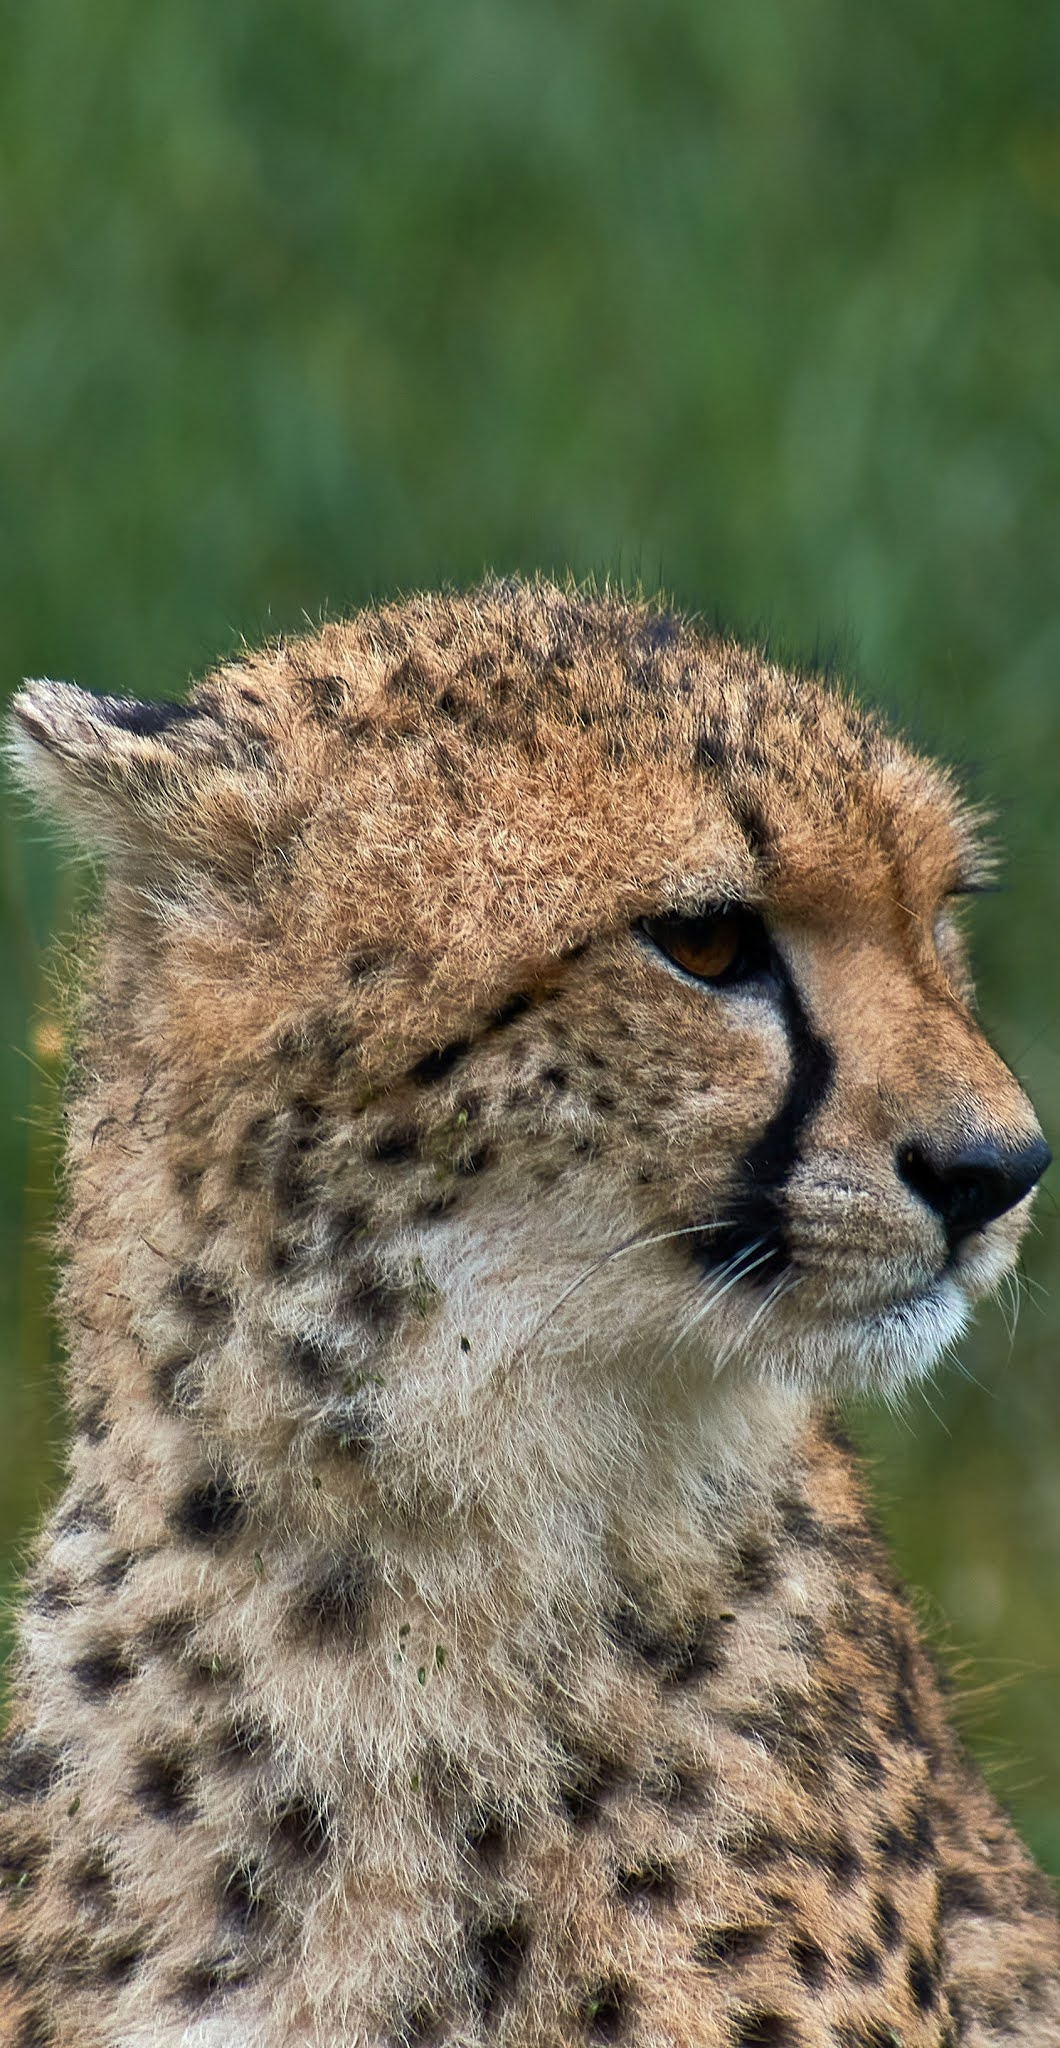 A cheetah on the lookout.